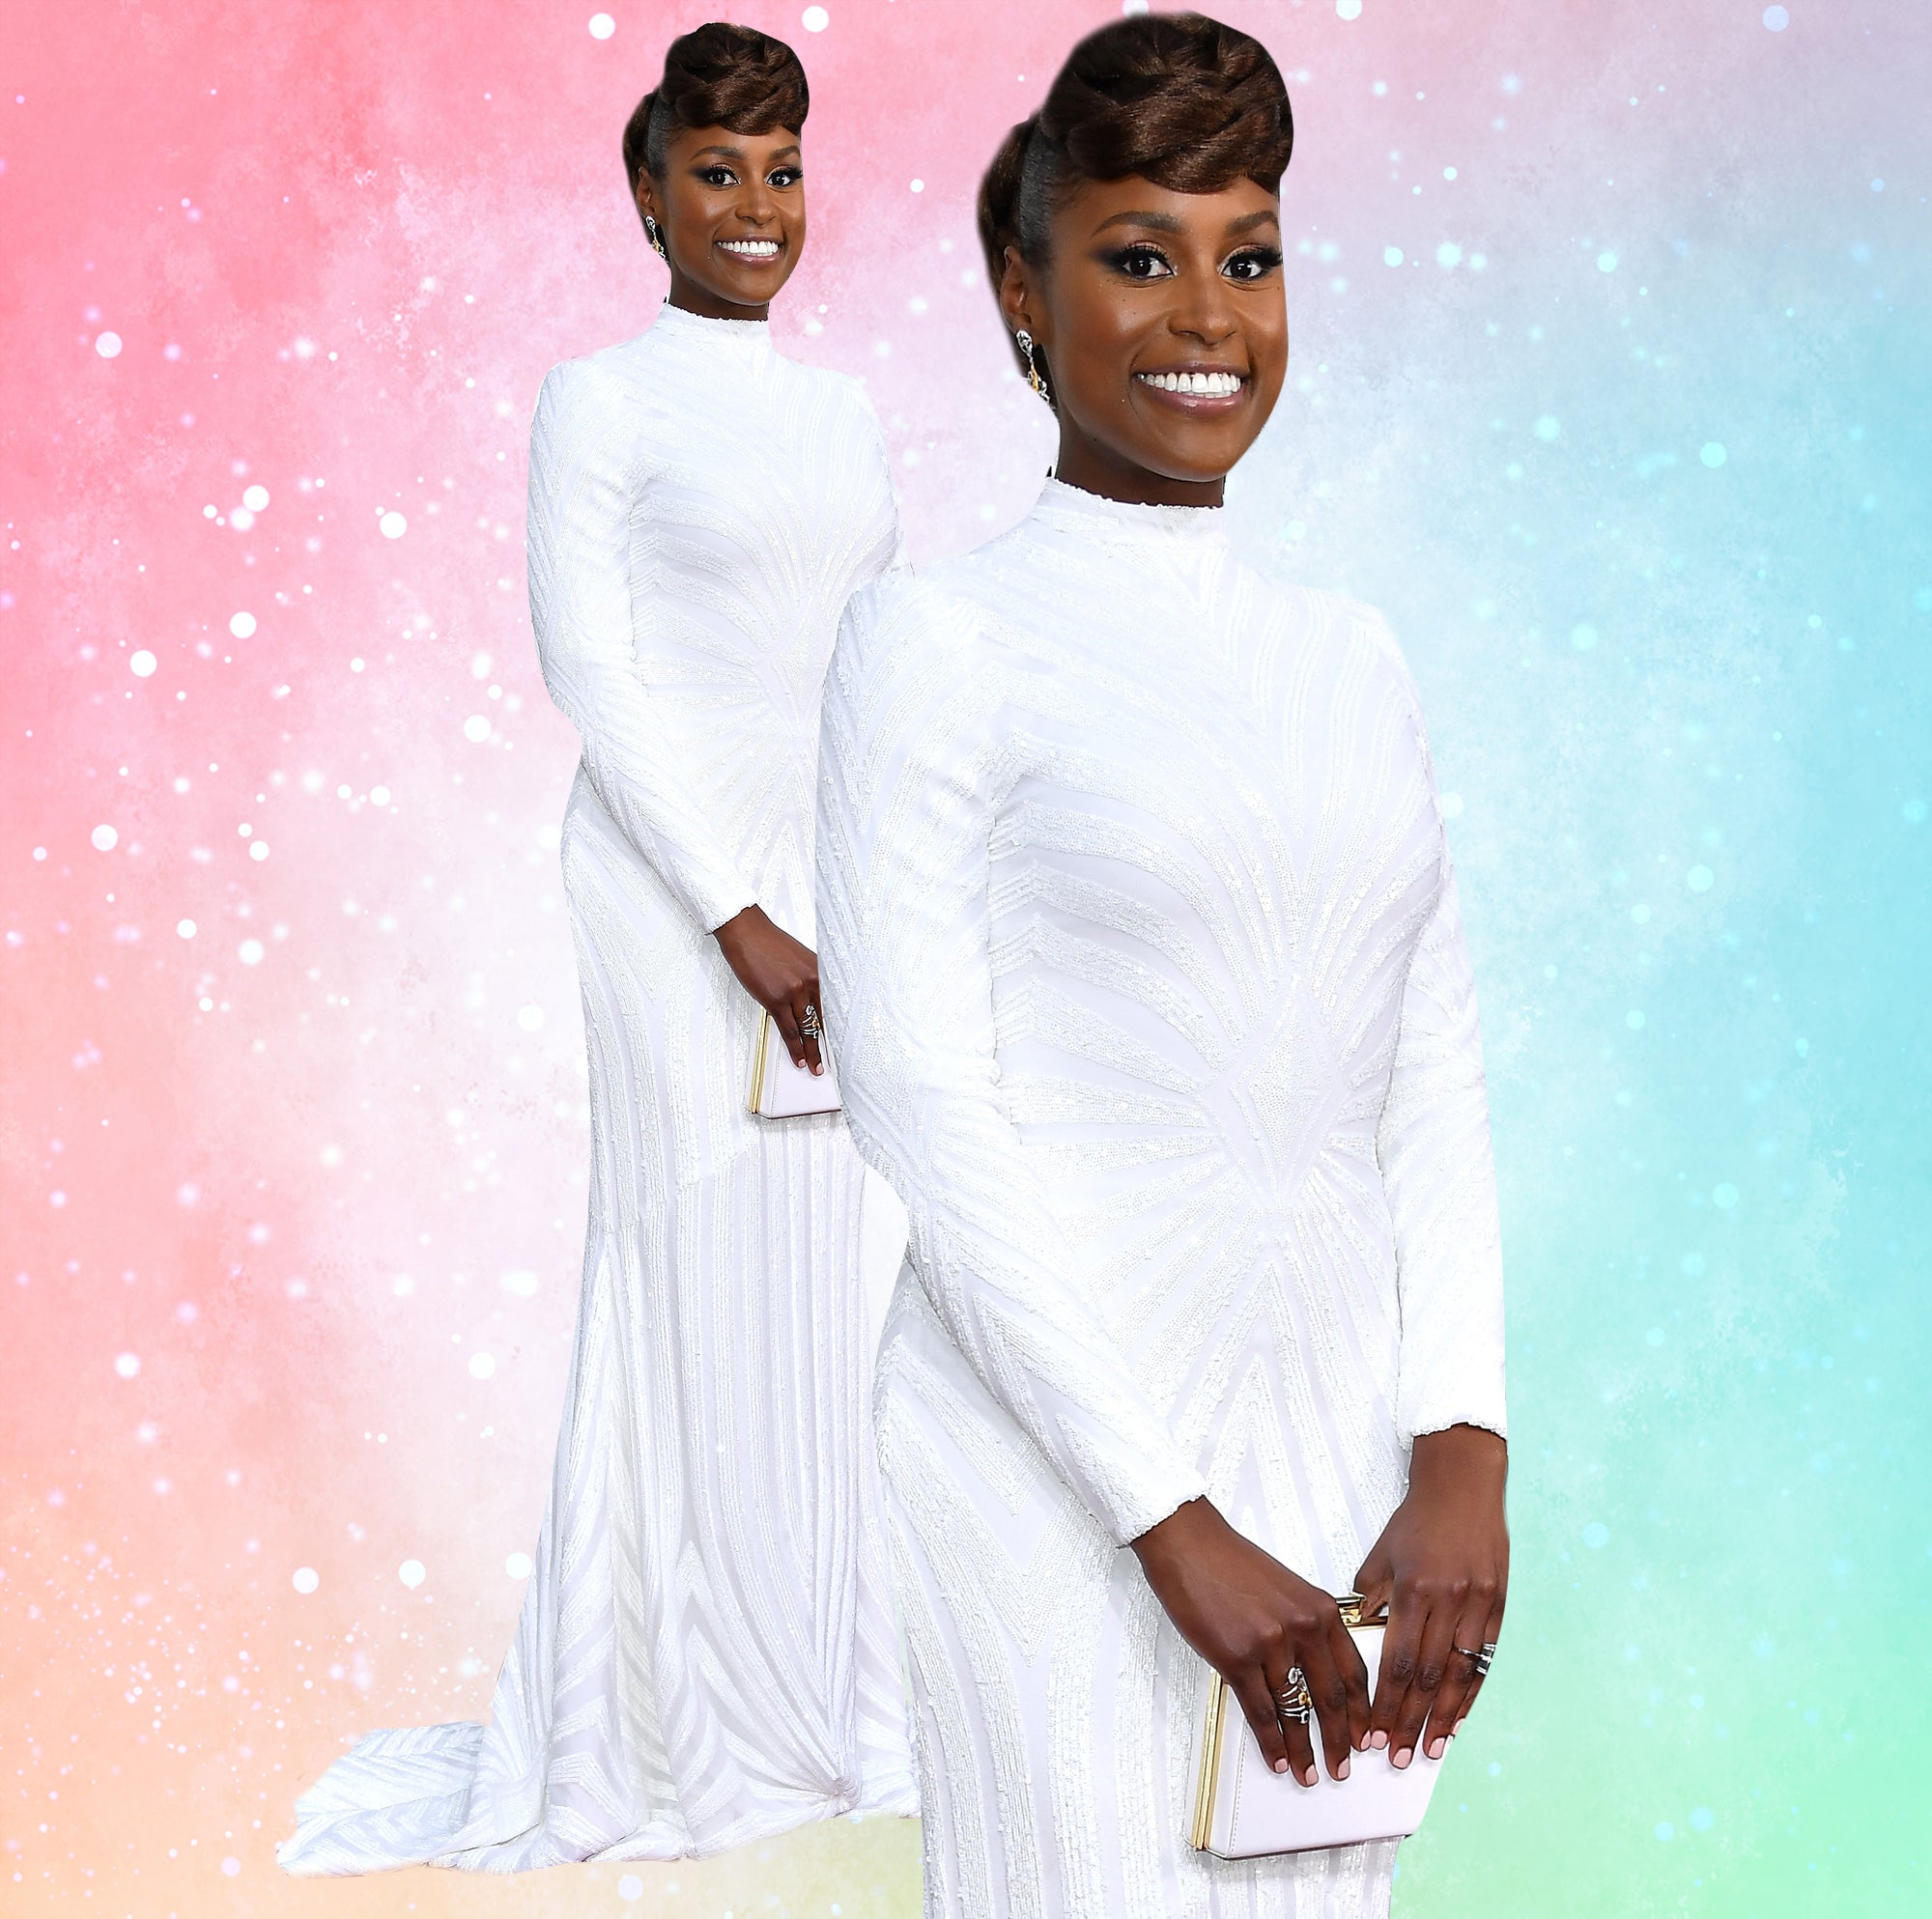 Issa Rae's 2017 Golden Globes Awards Look Couldn't Be Any More Fabulous